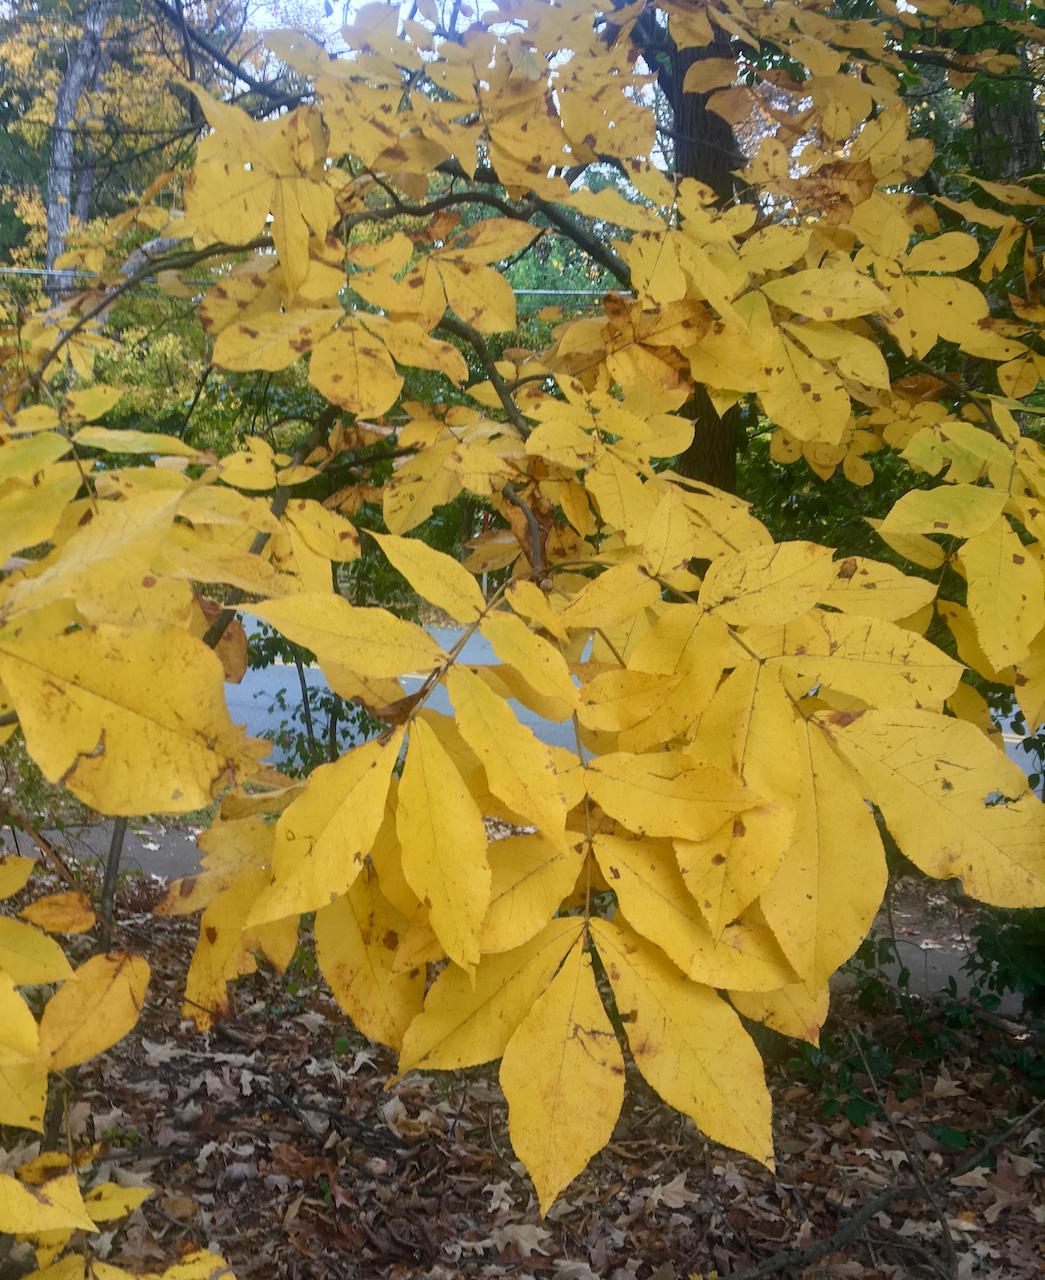 The Scientific Name is Carya tomentosa. You will likely hear them called Mockernut Hickory, White Hickory. This picture shows the Lemon-yellow fall foliage of Carya tomentosa